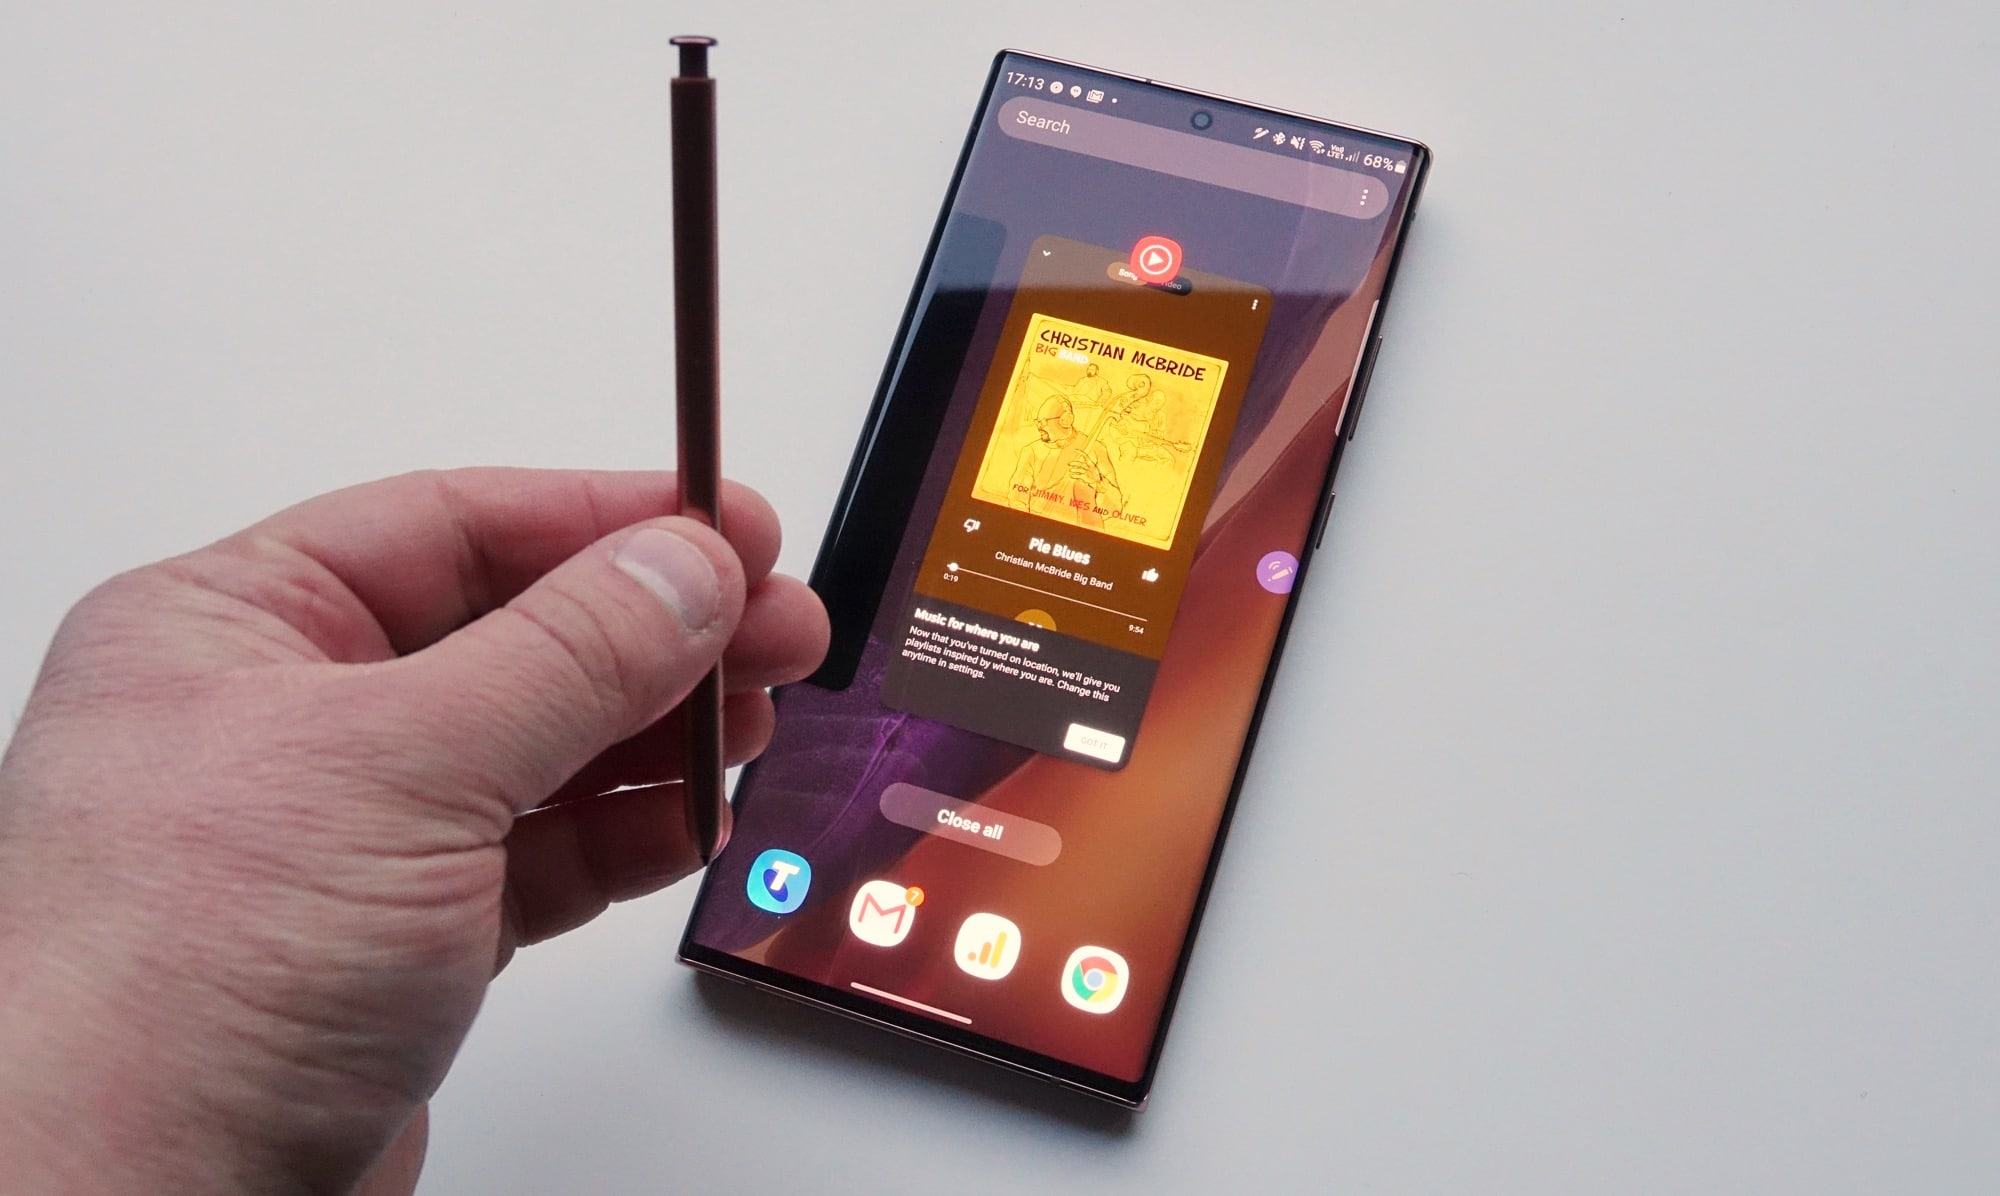 Using Air Gestures with the Galaxy Note 20 Ultra